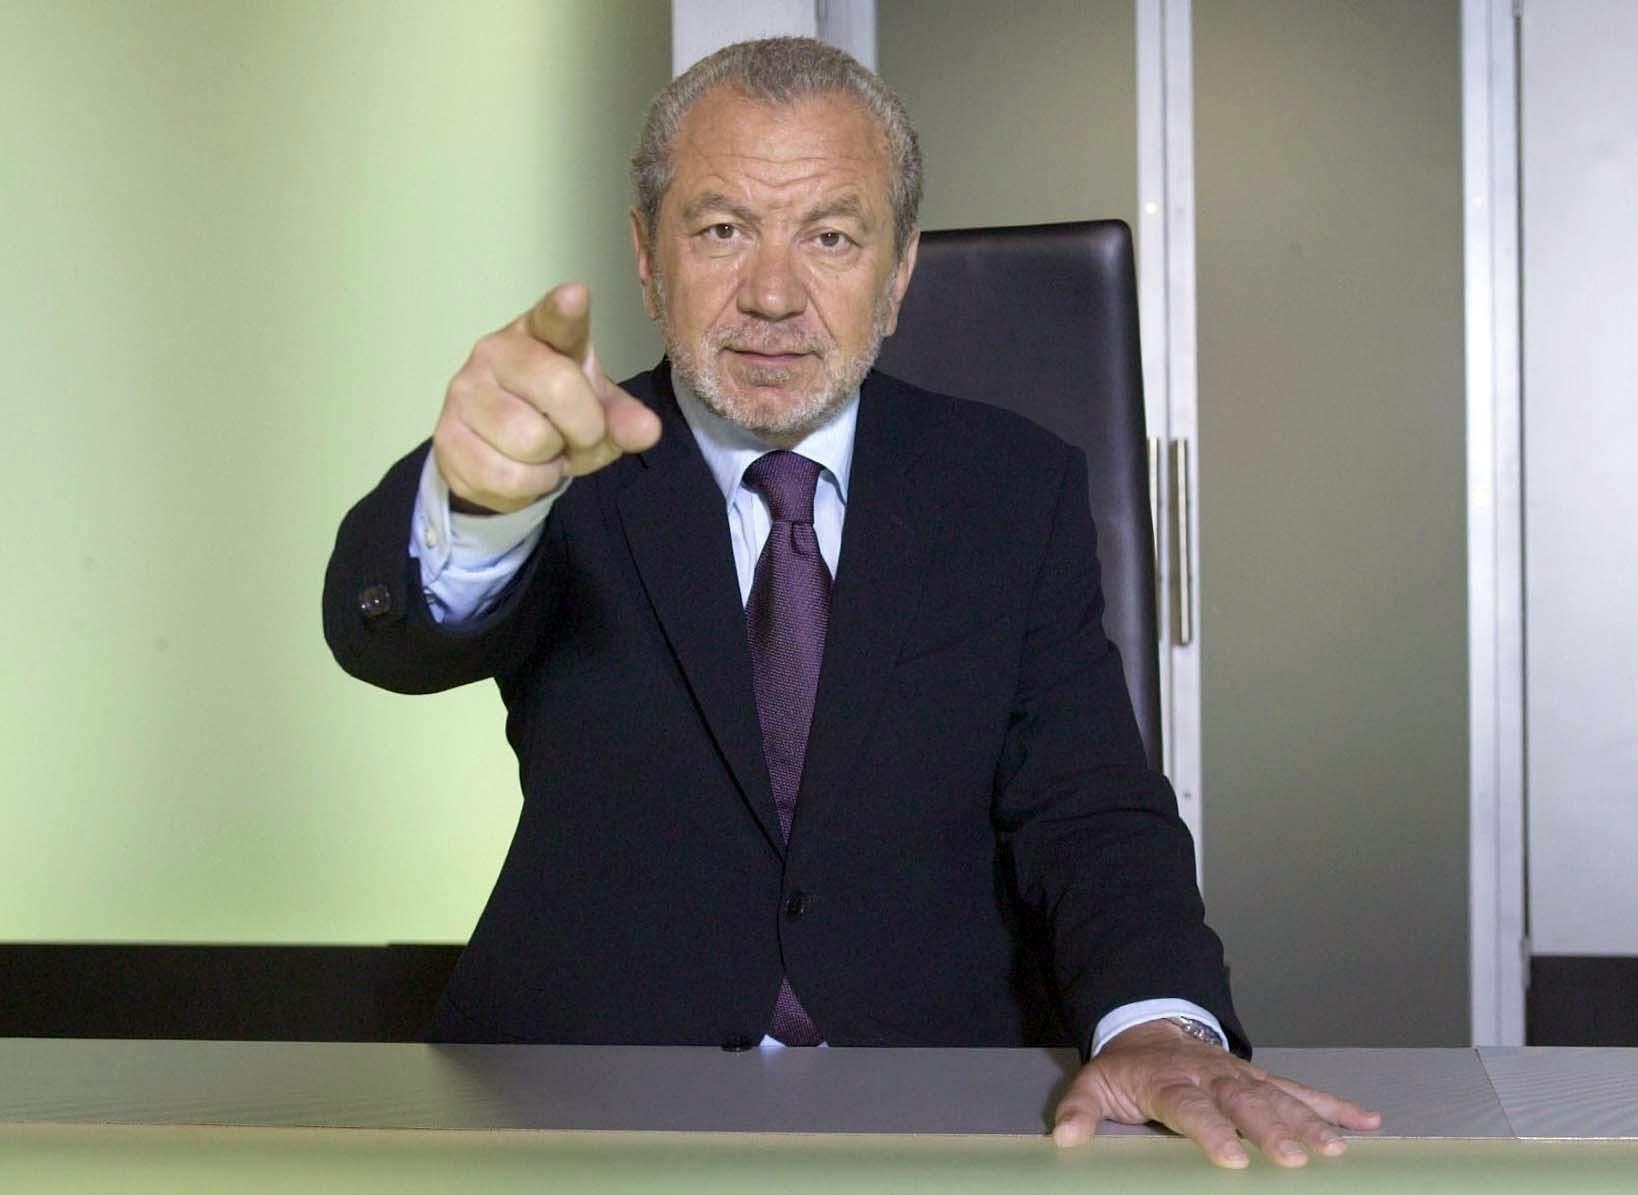 The Apprentice's 9 most annoying candidates ever